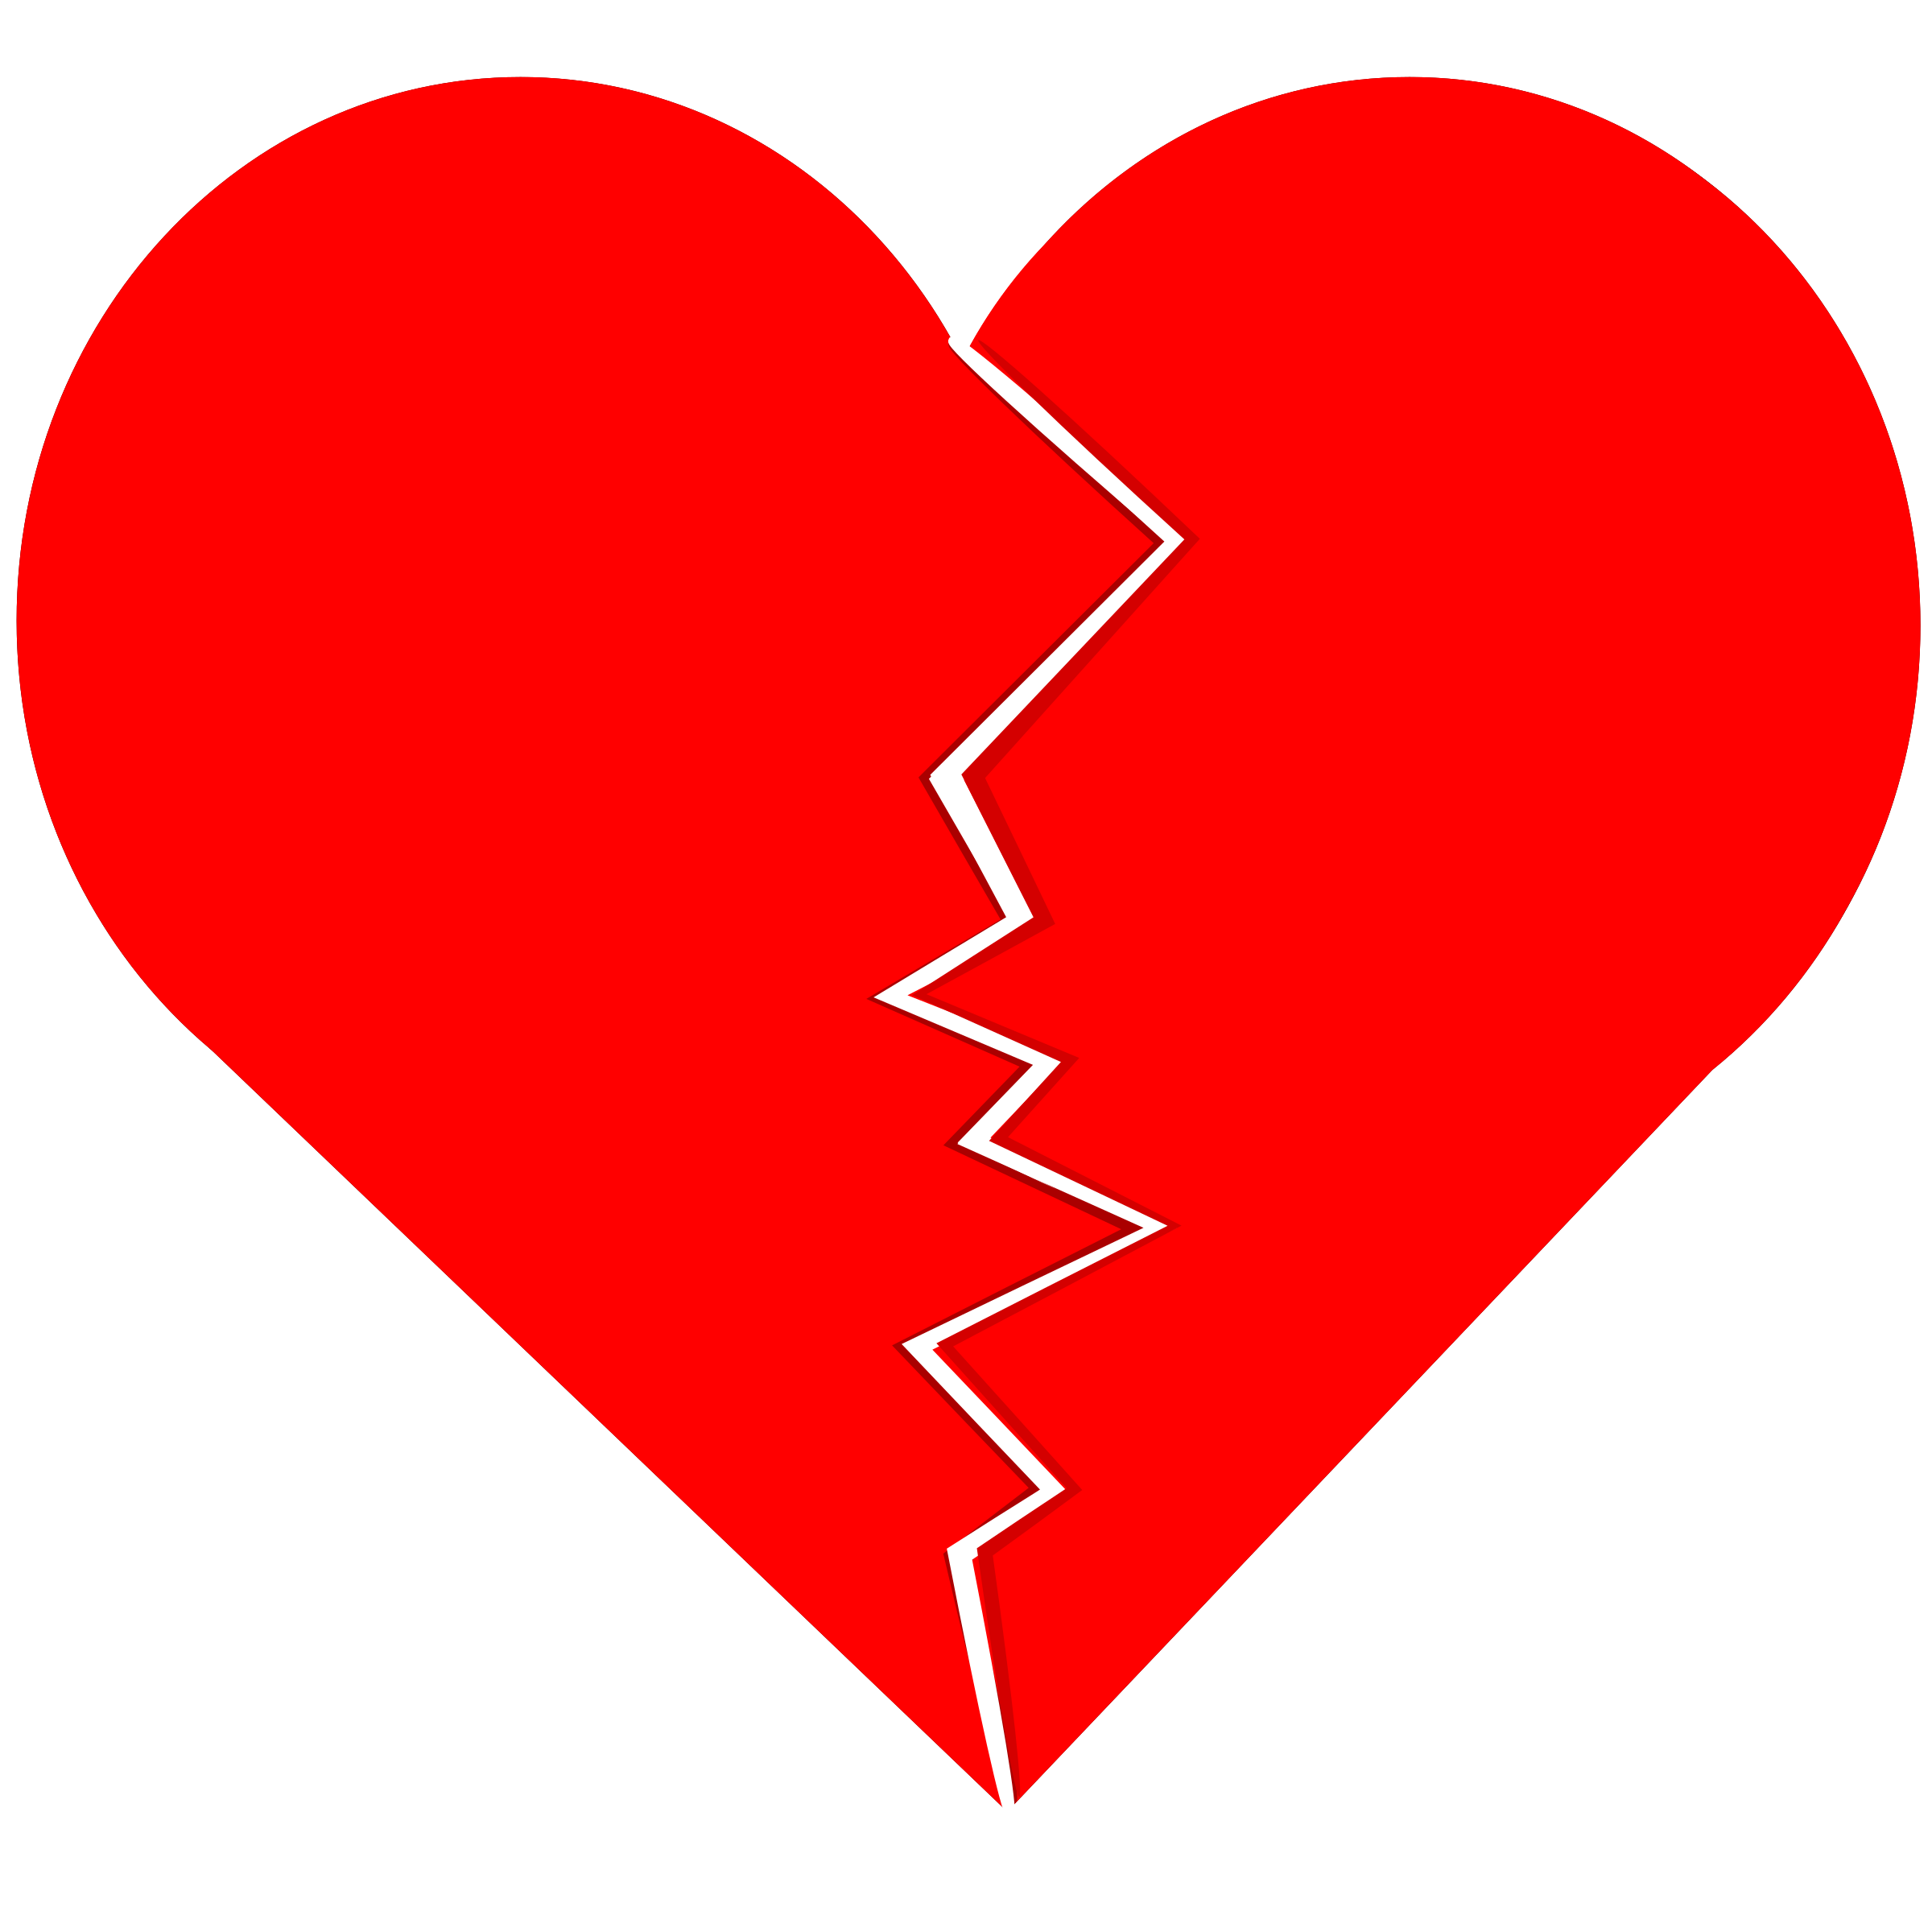 cracked and broken heart vector clipart image free stock clip art broken heart emoji clip art broken heart person